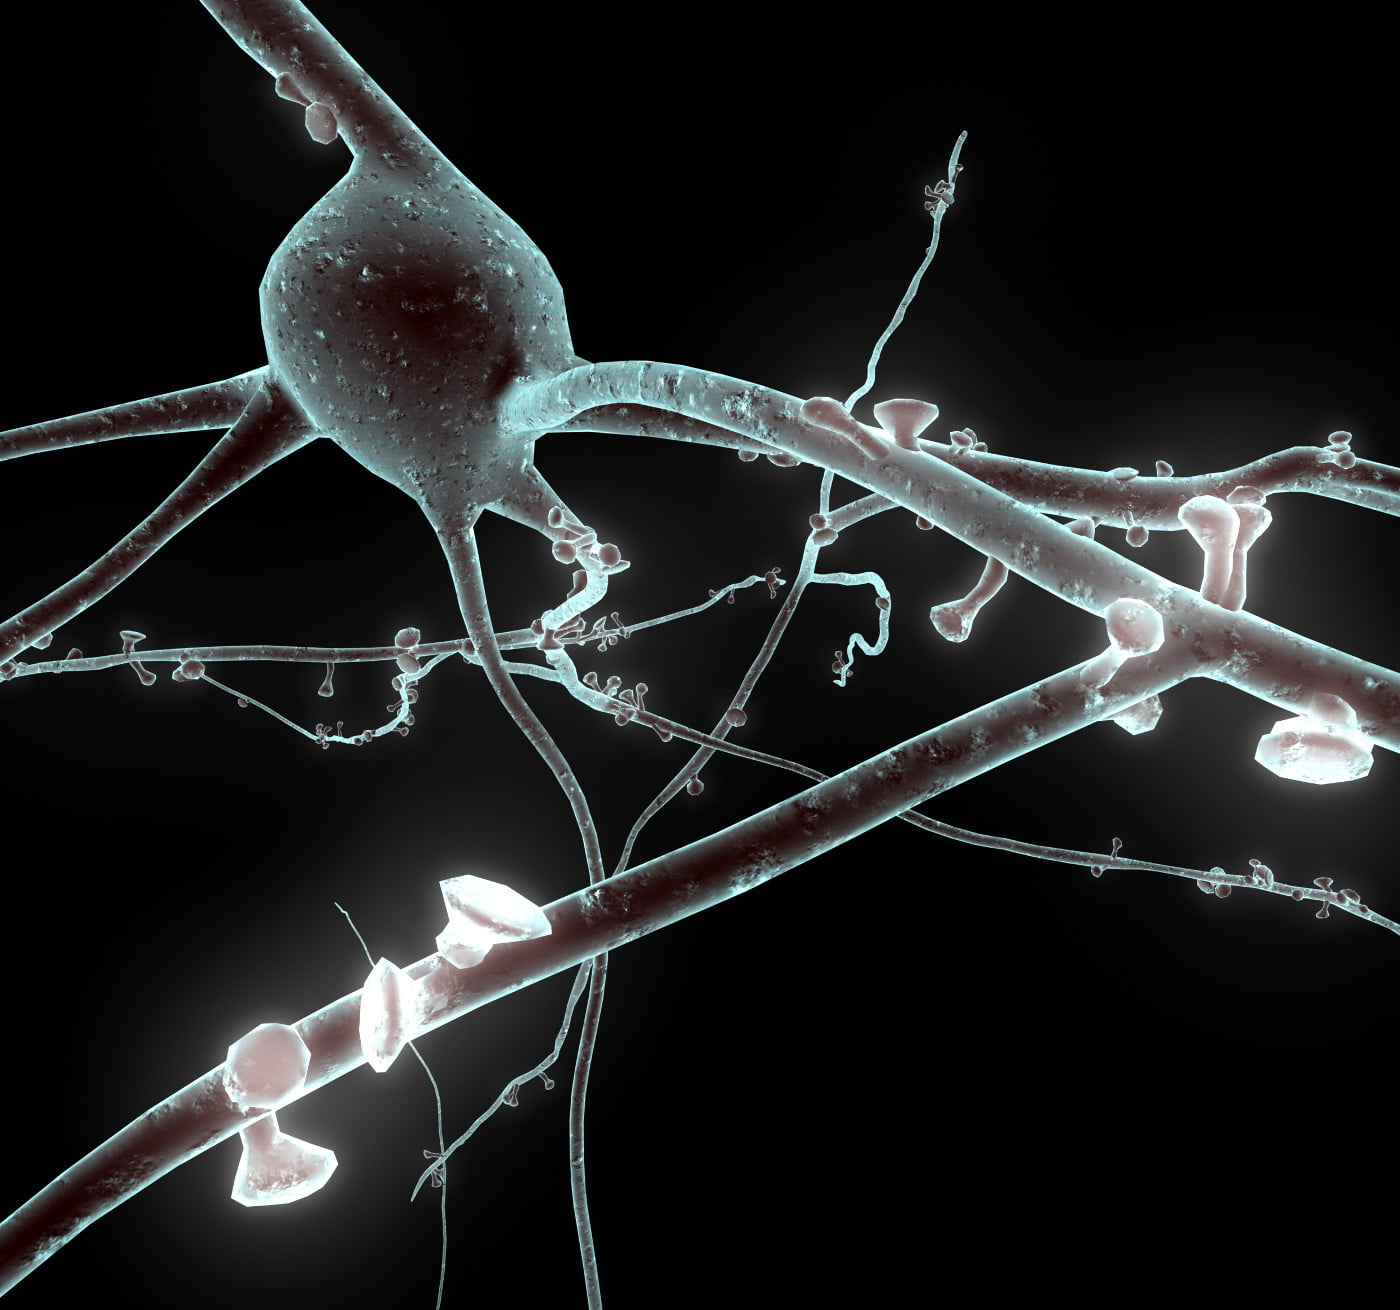 A rendering of a neuron used in the digital reconstruction of the brain via Blue Brain Project